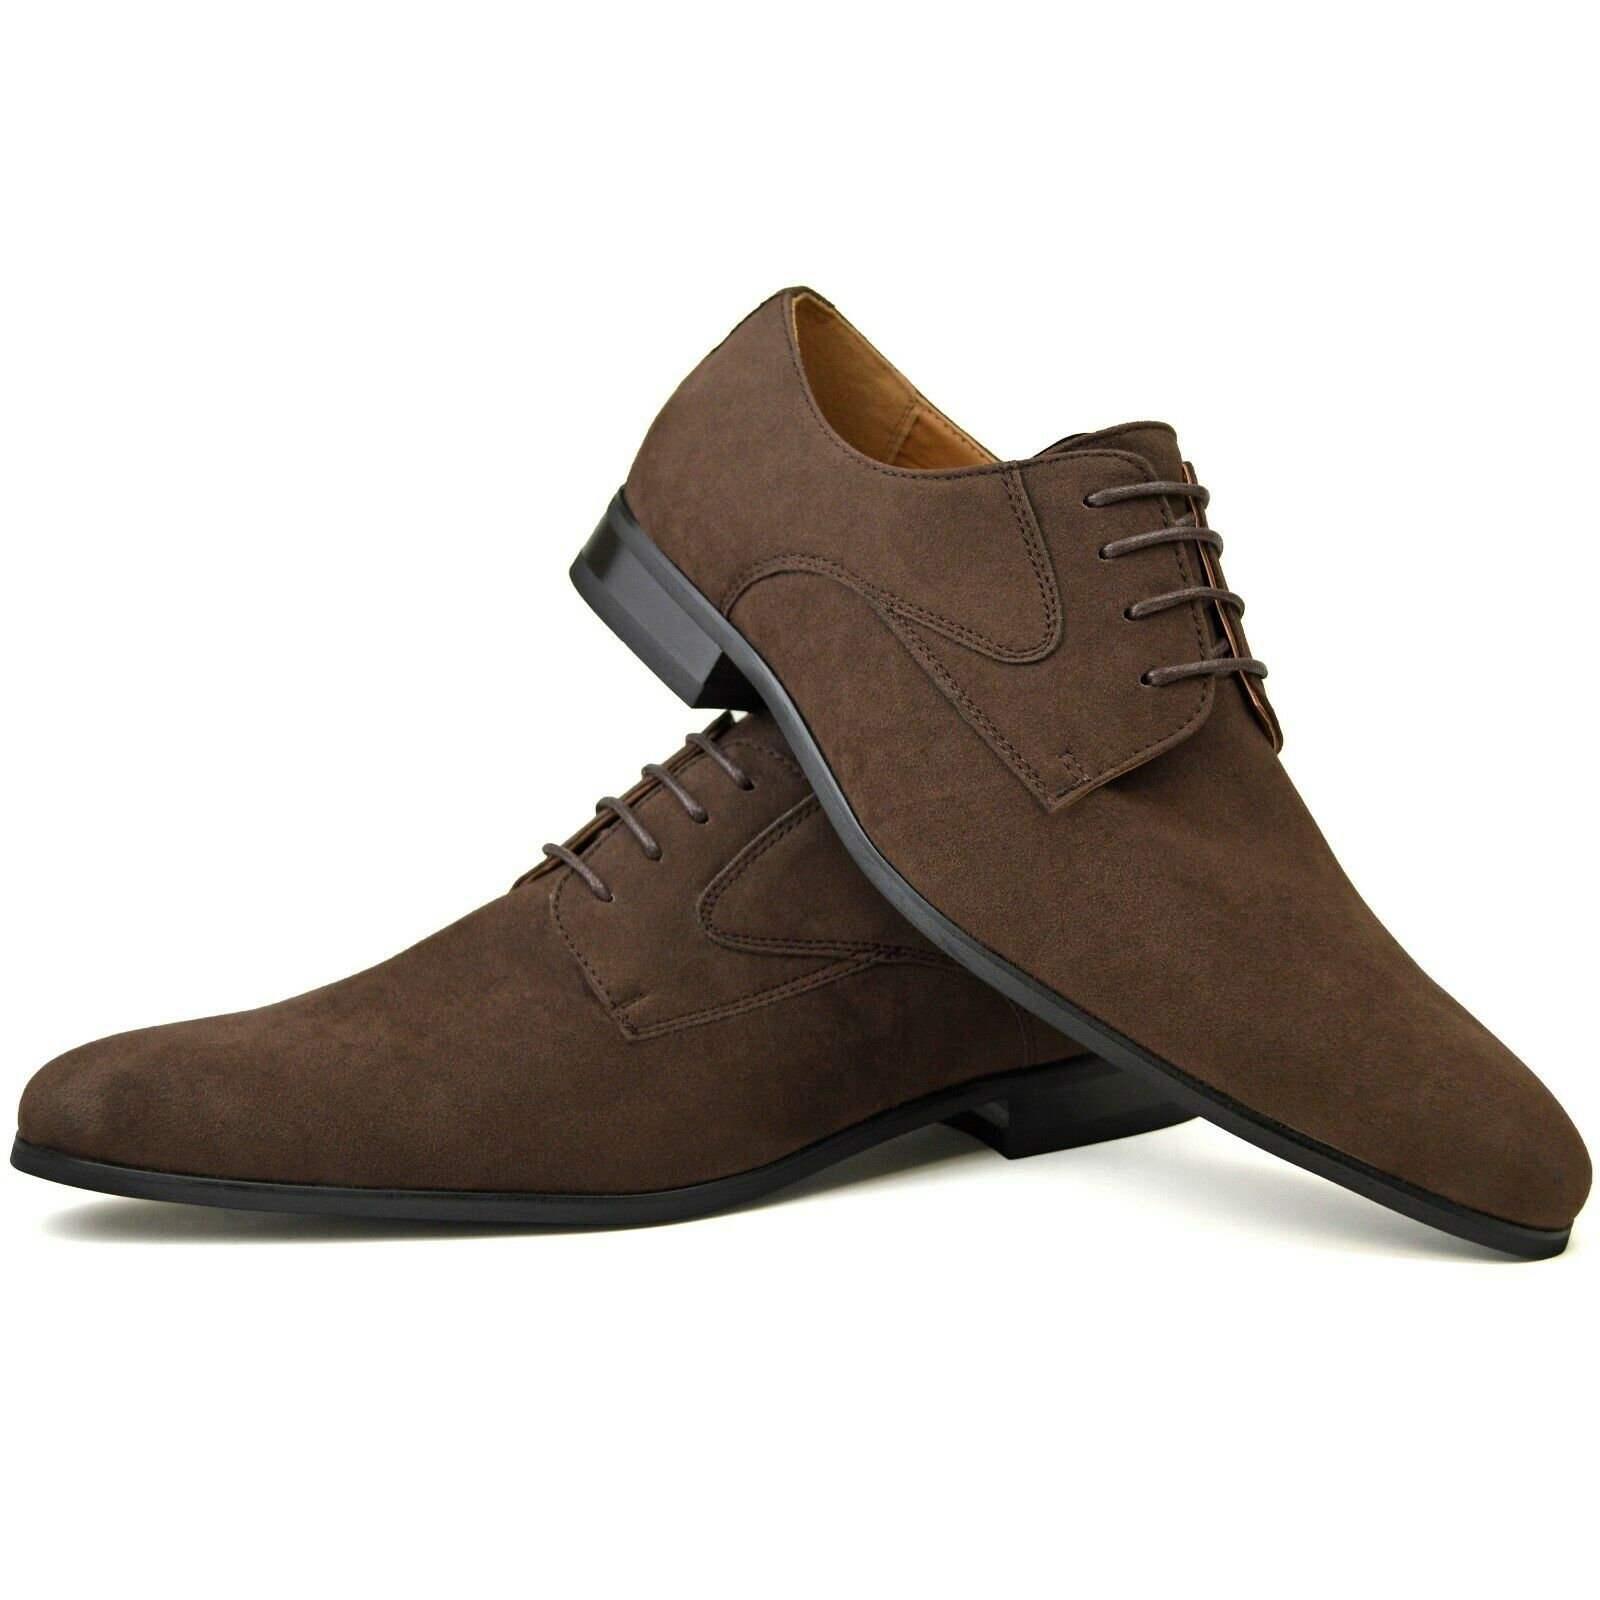 Mens Leather Dress Shoes Canada